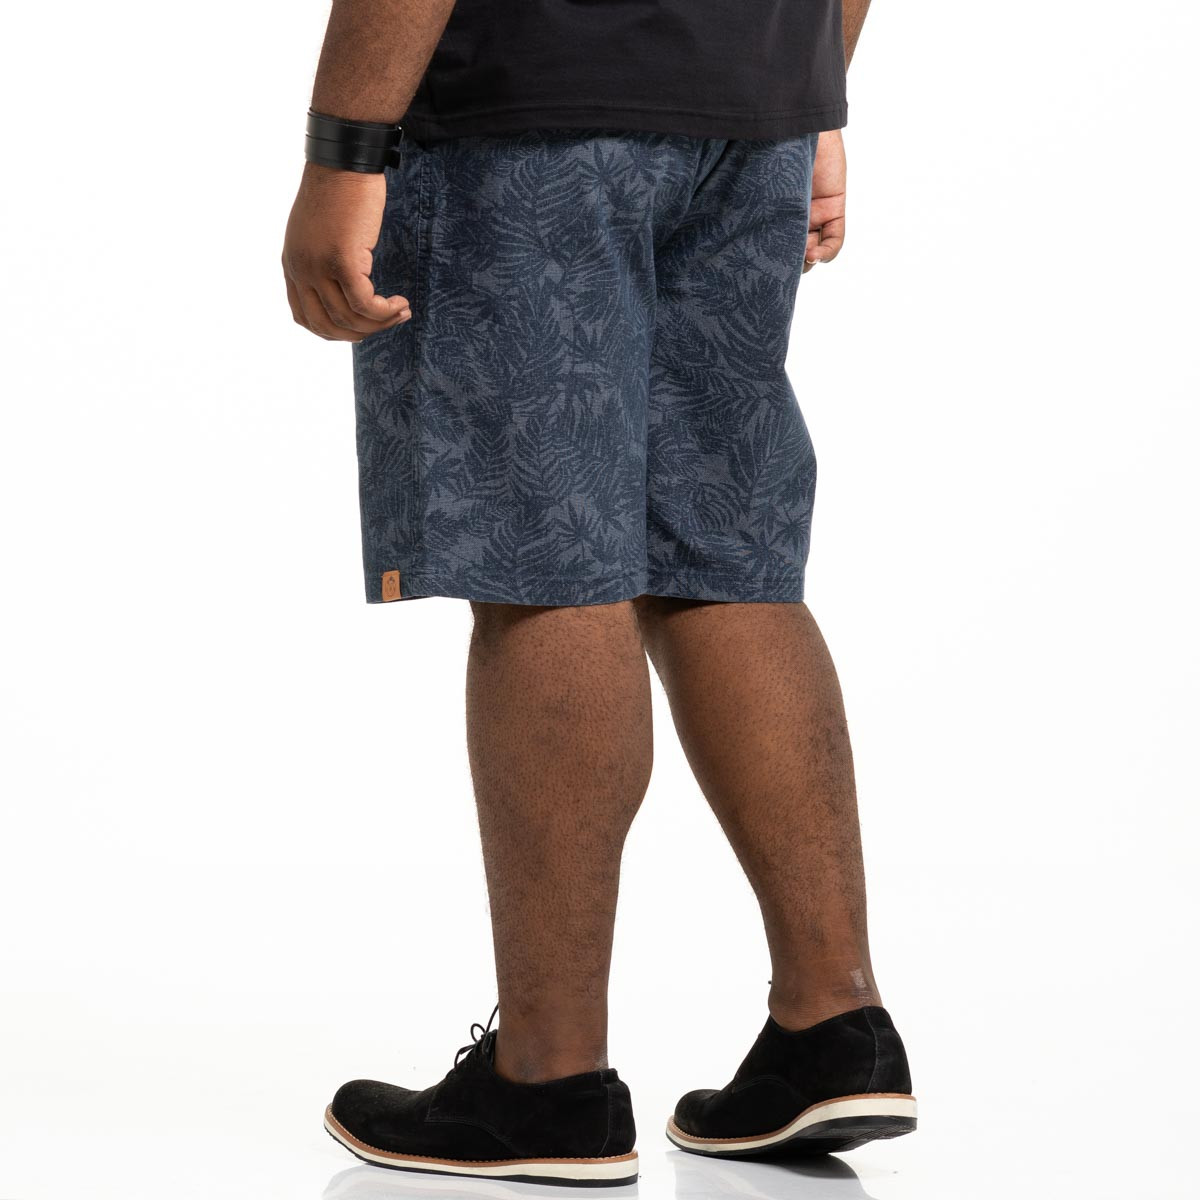 Bermuda de Sarja Plus Size Masculina Blue Jungle